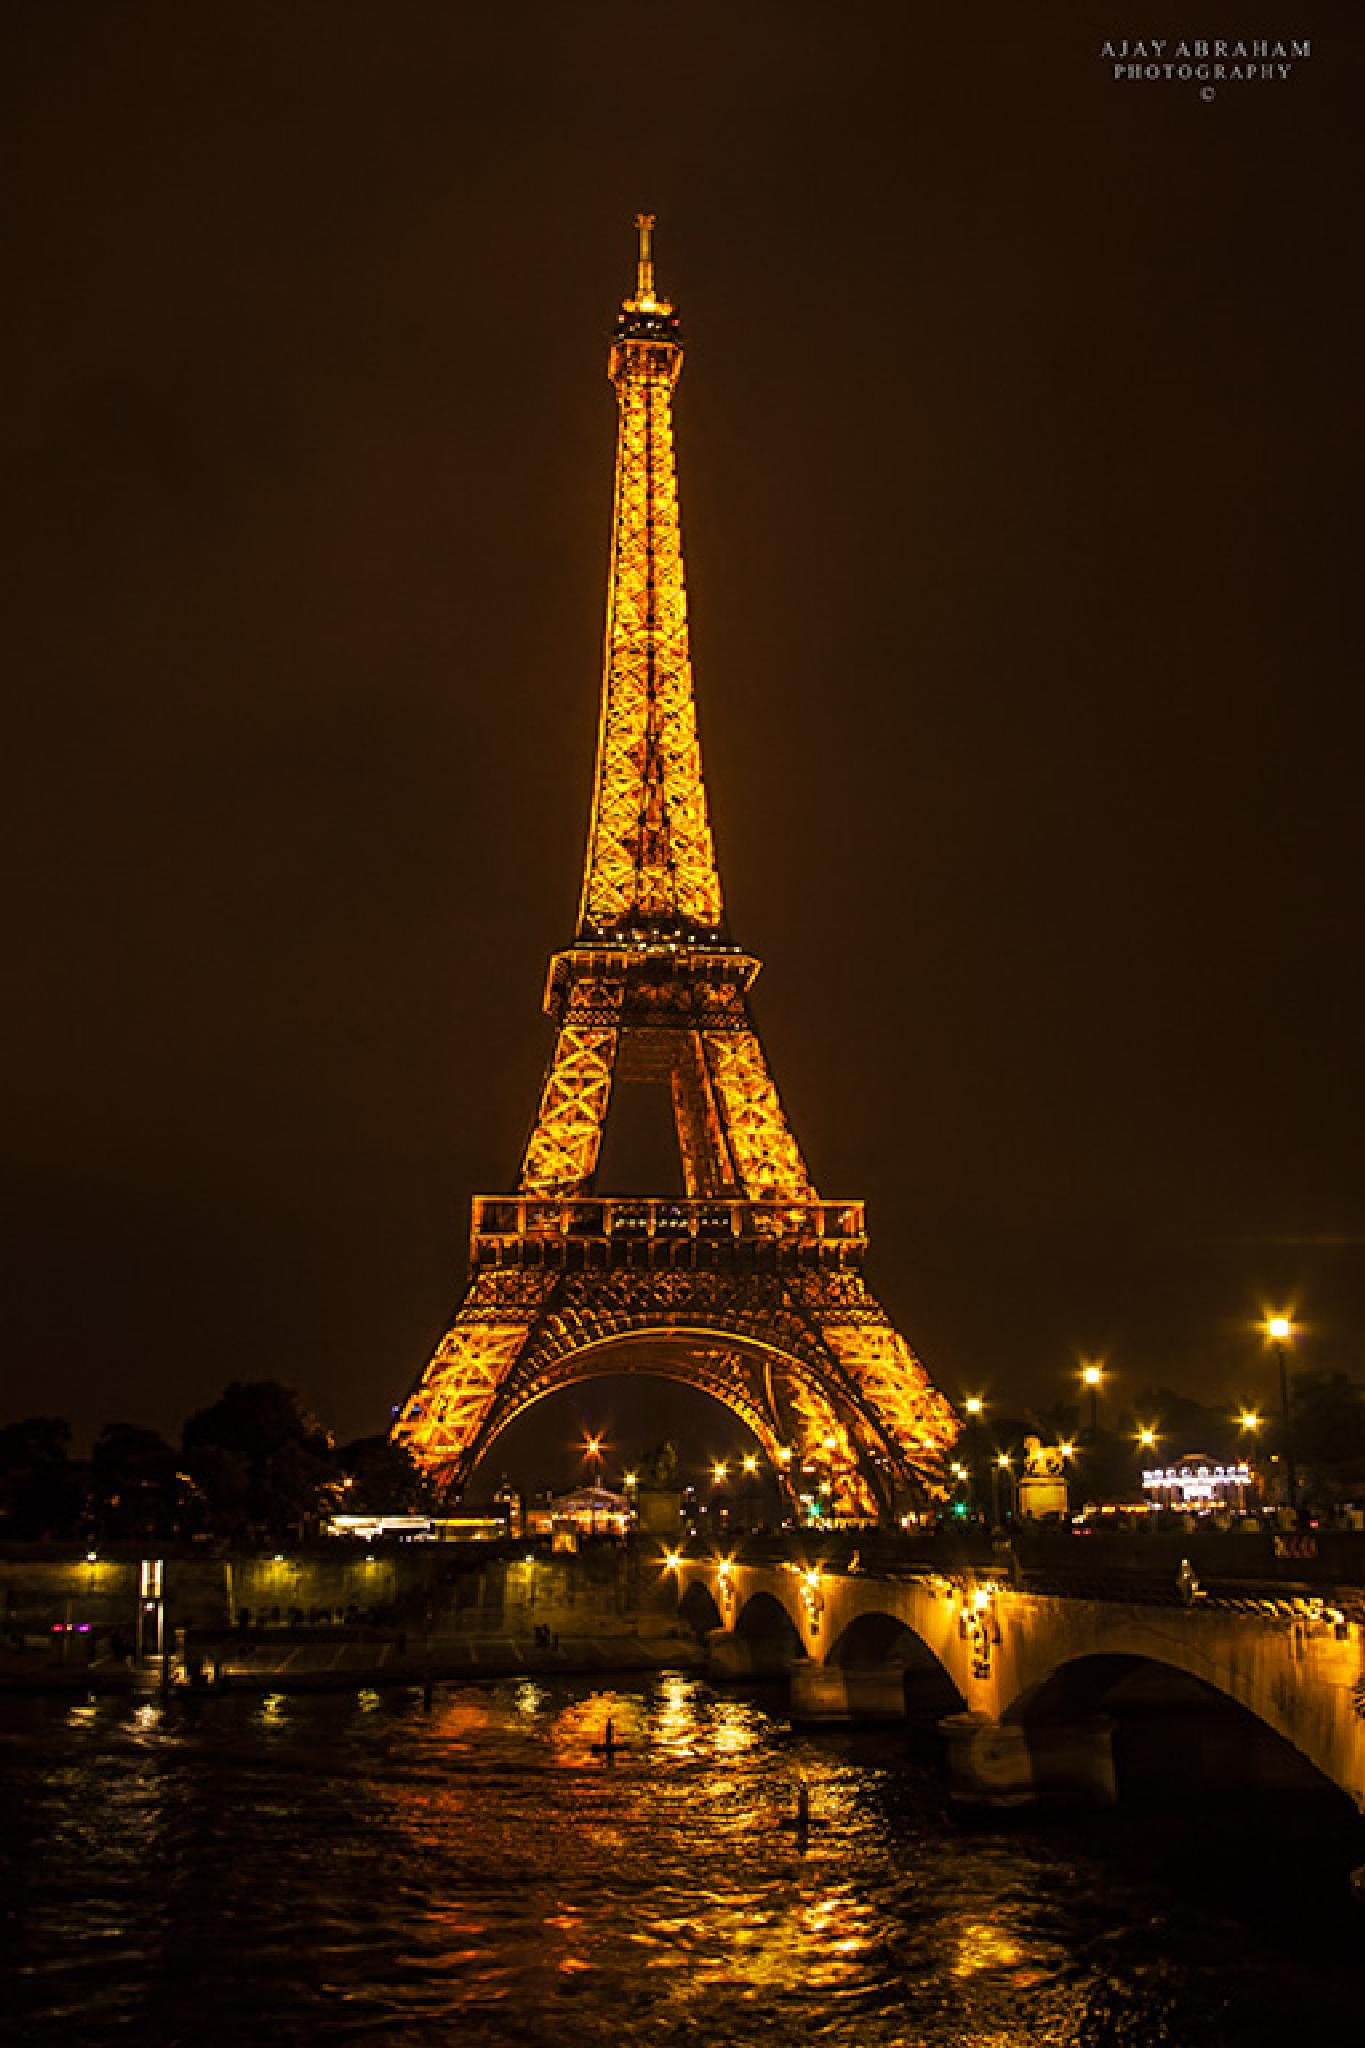 Eiffel By the river by ajayabraham2